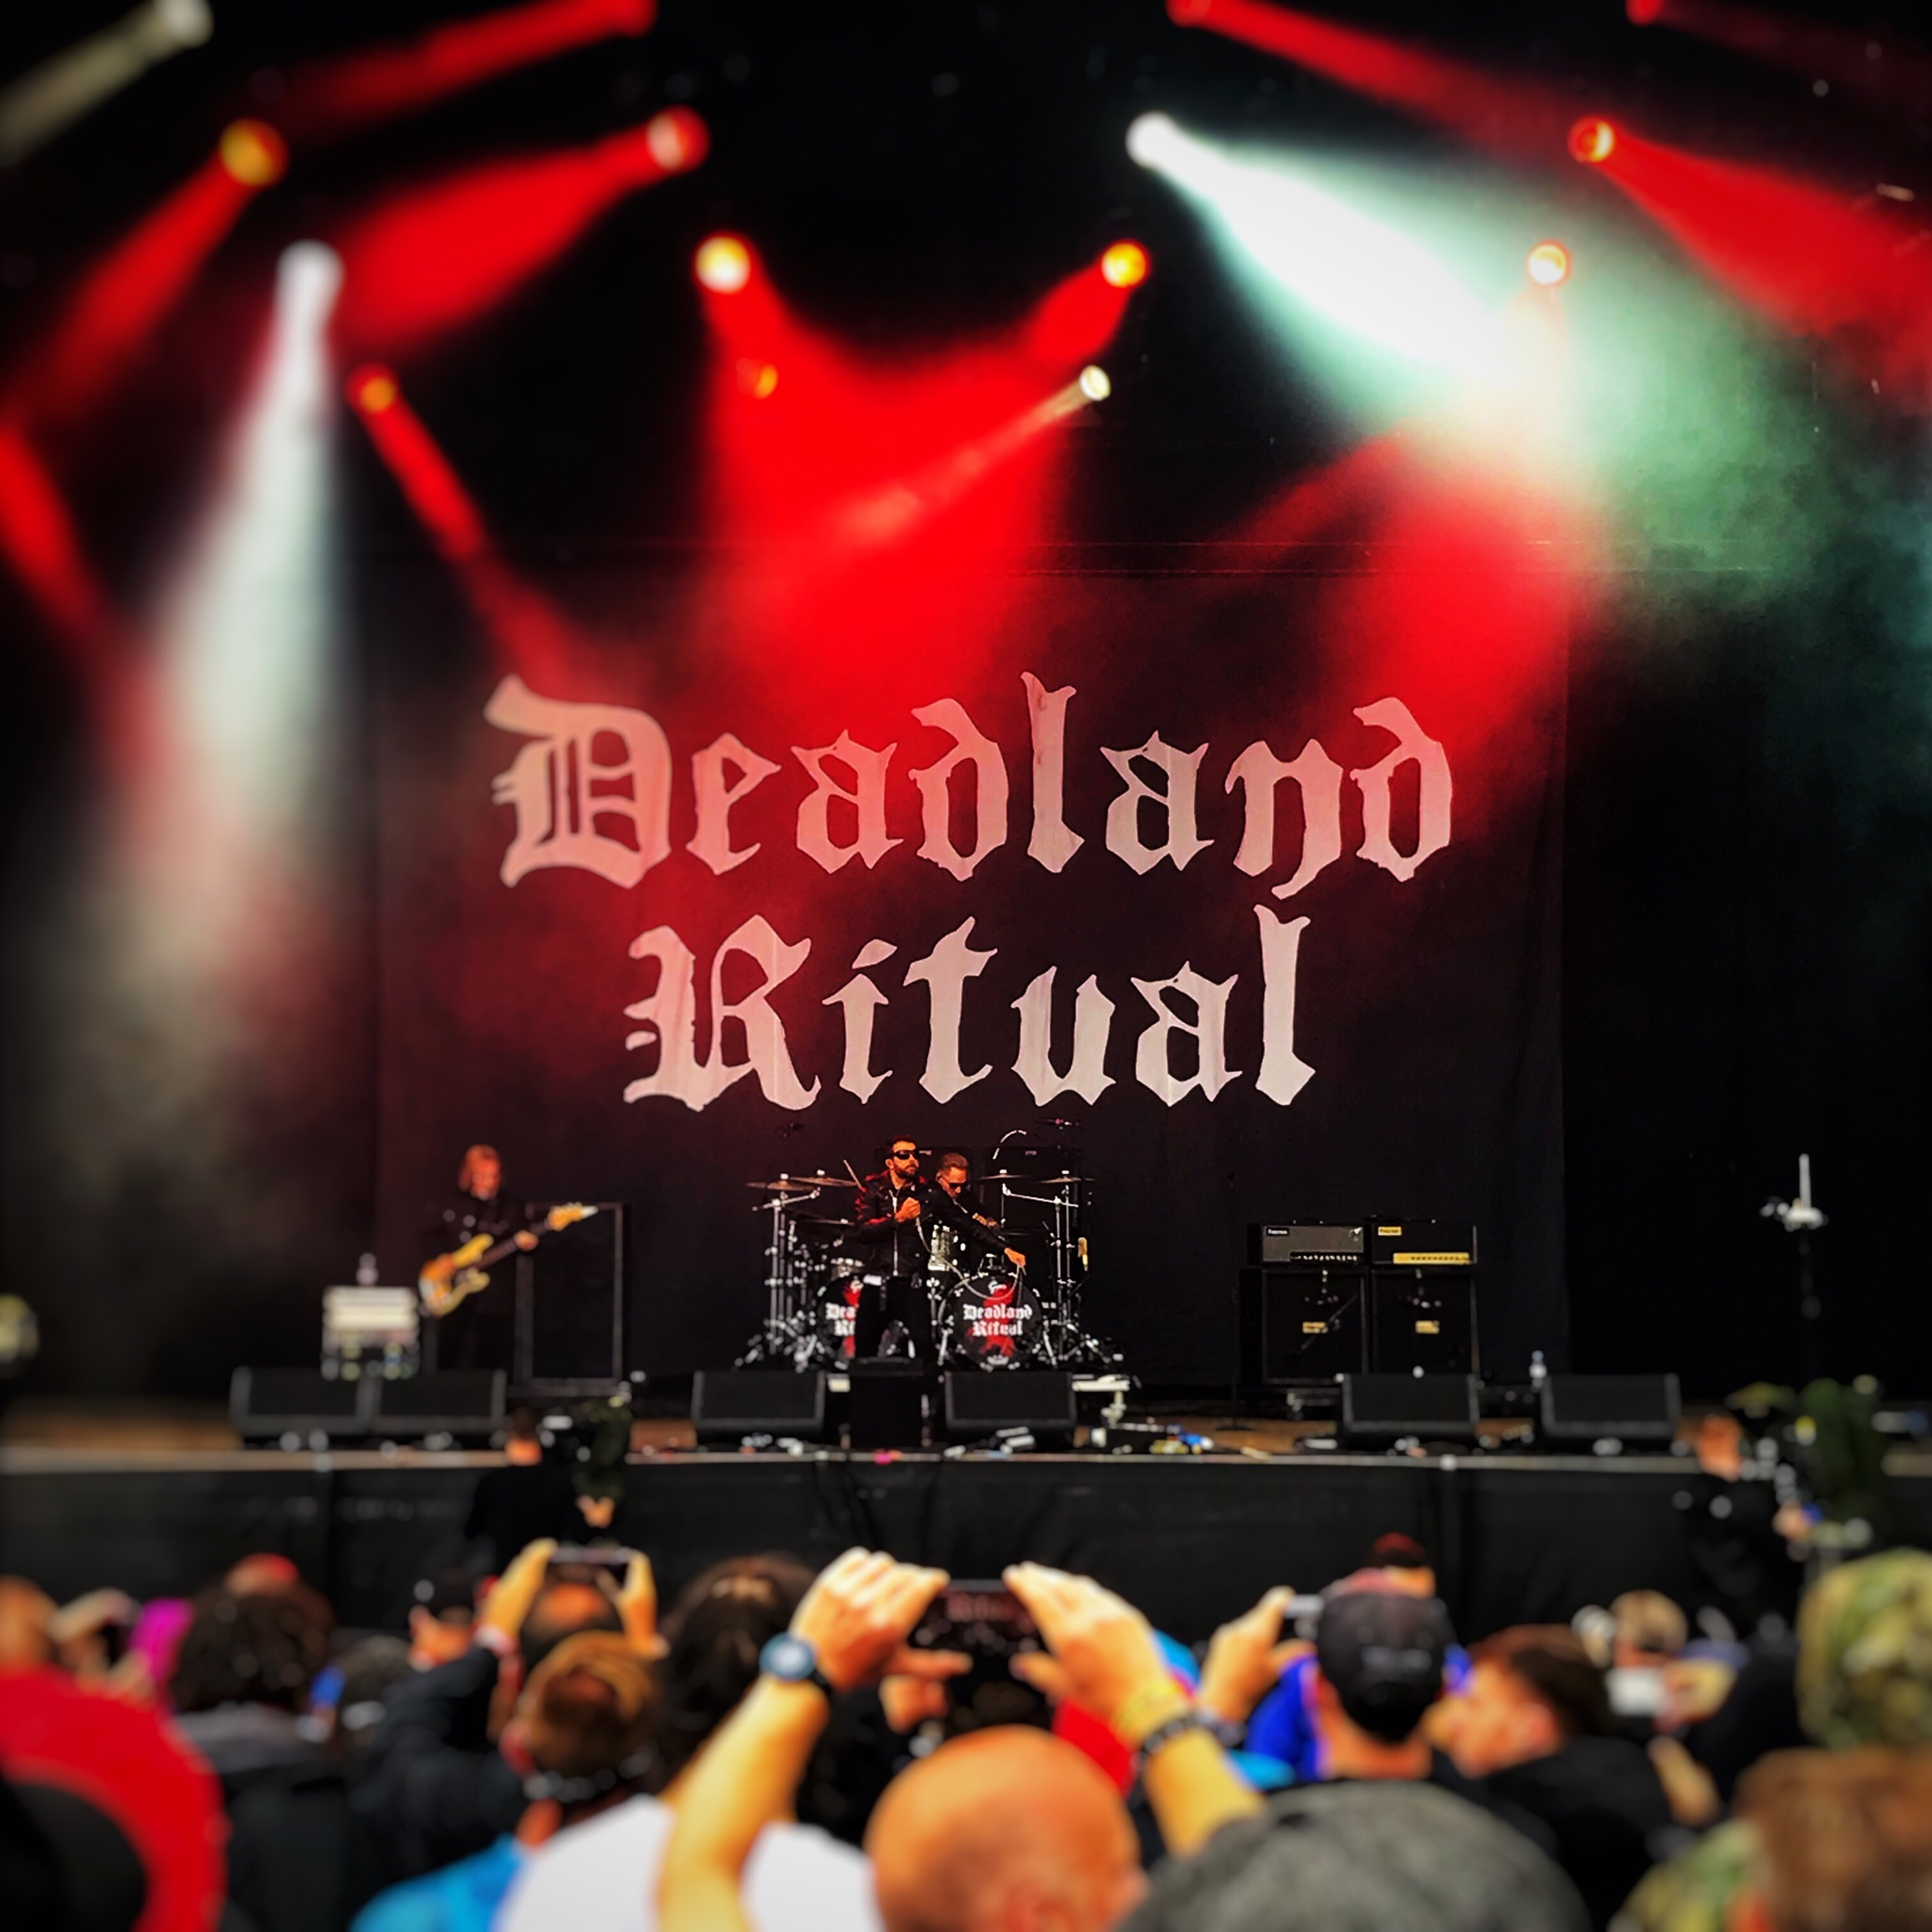 Deadland Ritual - Download Festival 2019